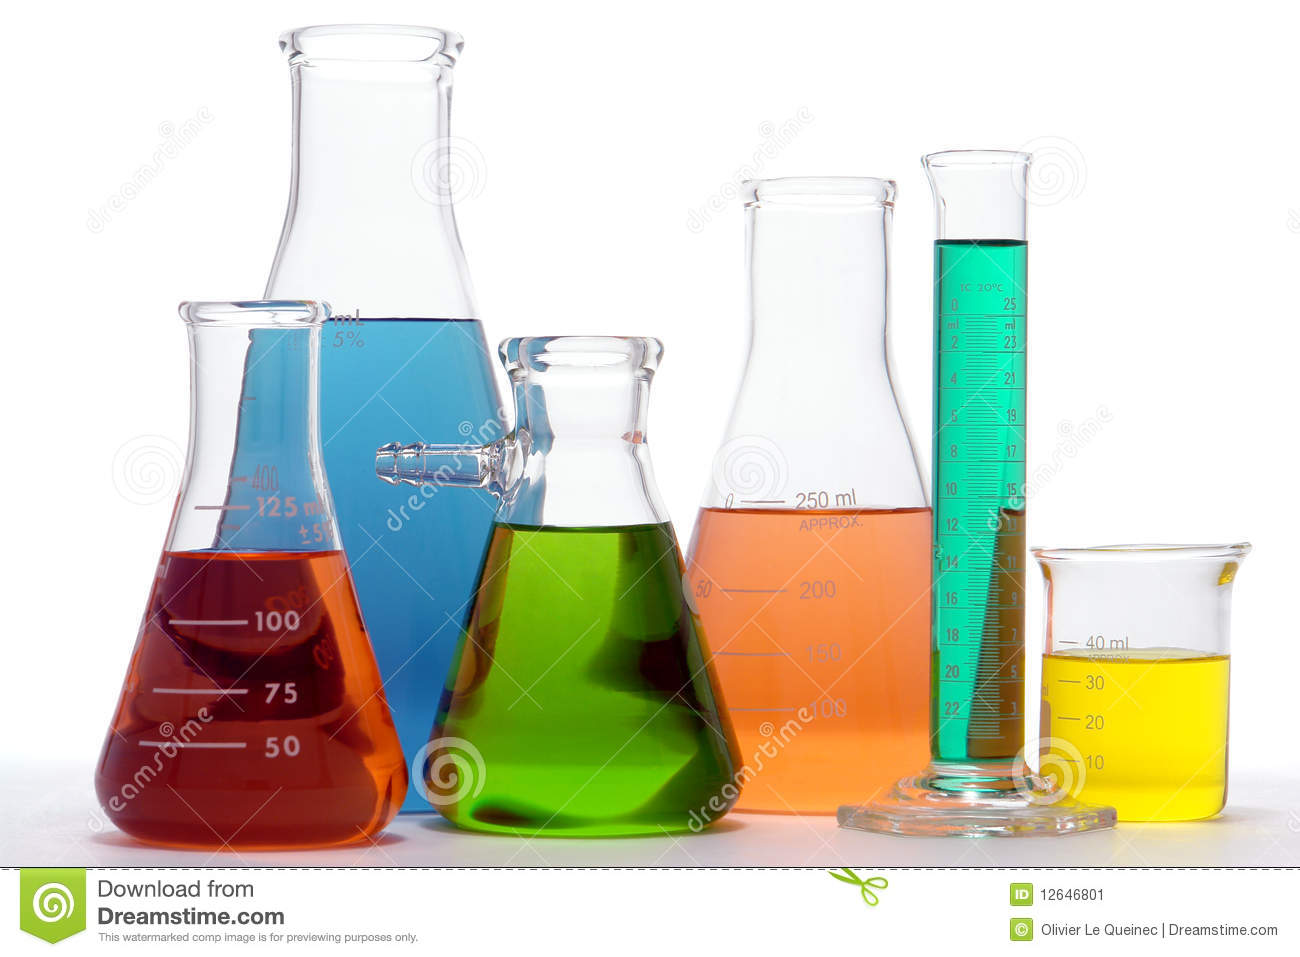 Worksheets Lab Equipment laboratory equipment in science research lab stock image lab